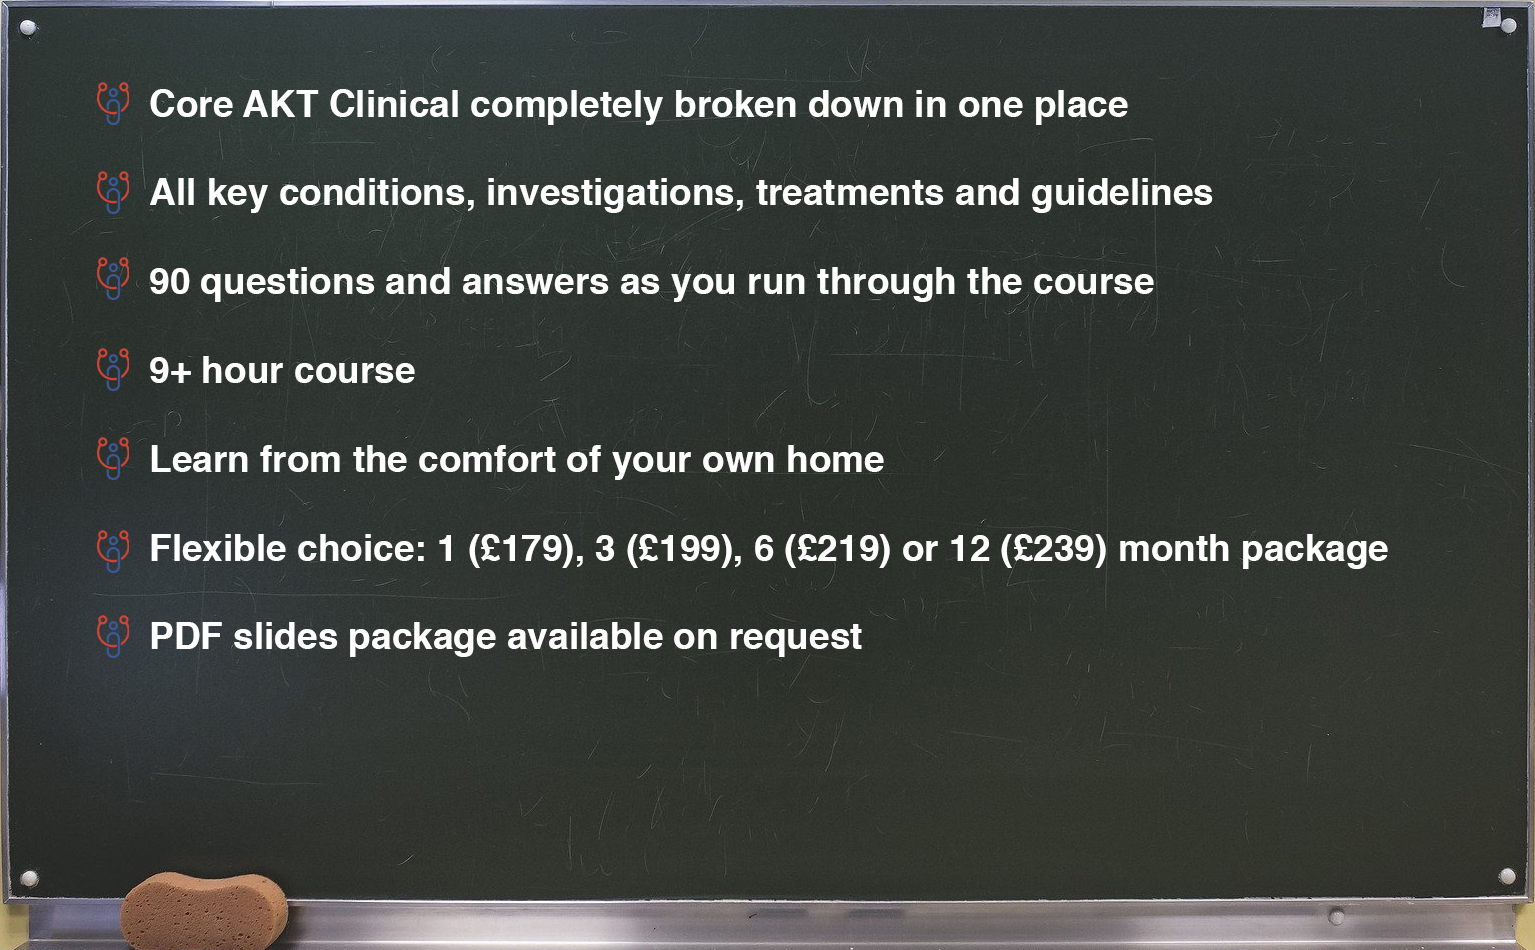 AKT Clinical Crammer Online Course 1 - MRCGP CSA, AKT and PLAB Exam Courses and Online Webinars - Arora Medical Education